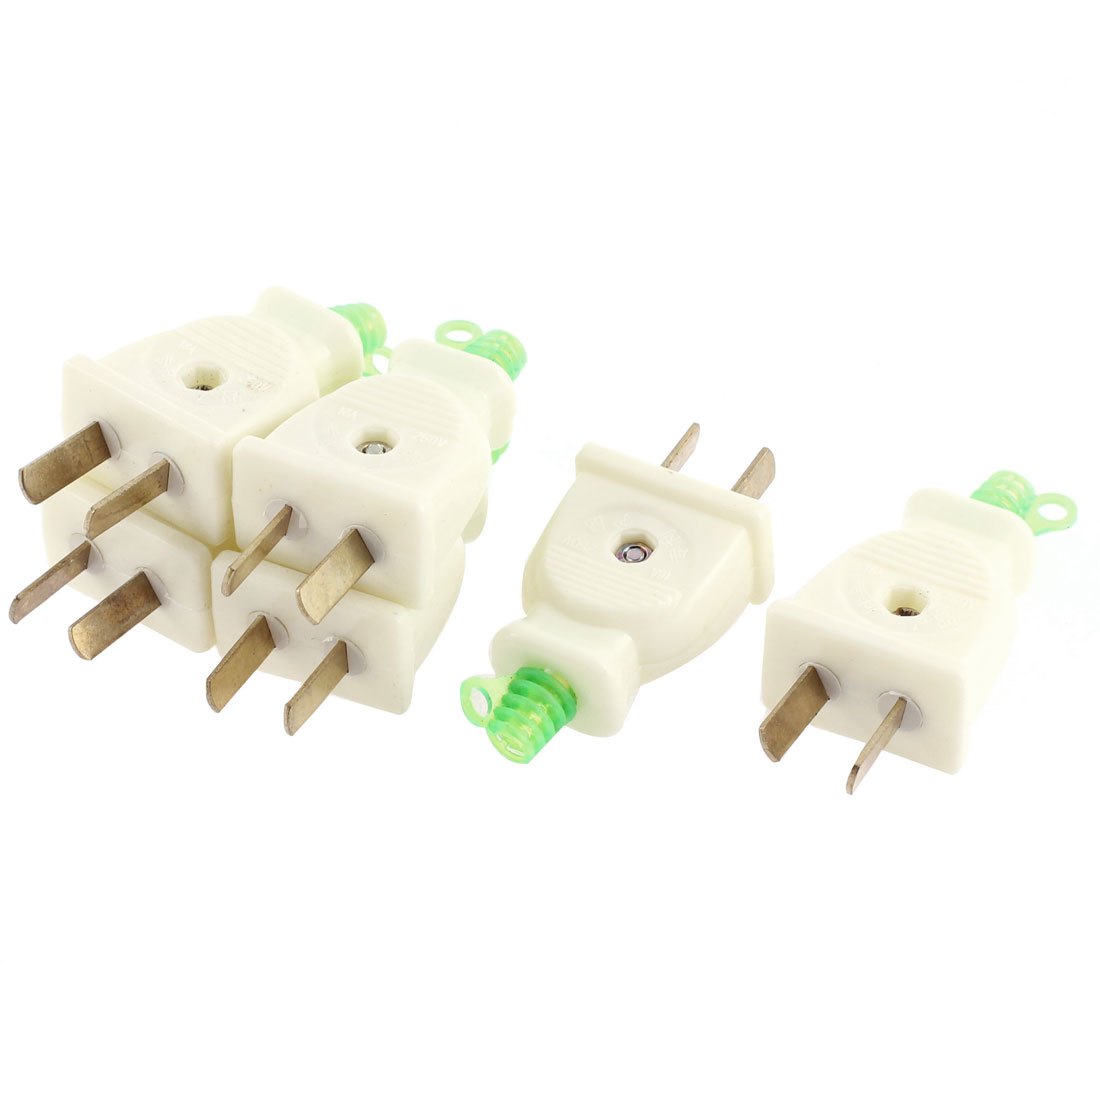 AC 250V 16A US AU Rotation Power Plug Adapter Connector 4 Pcs